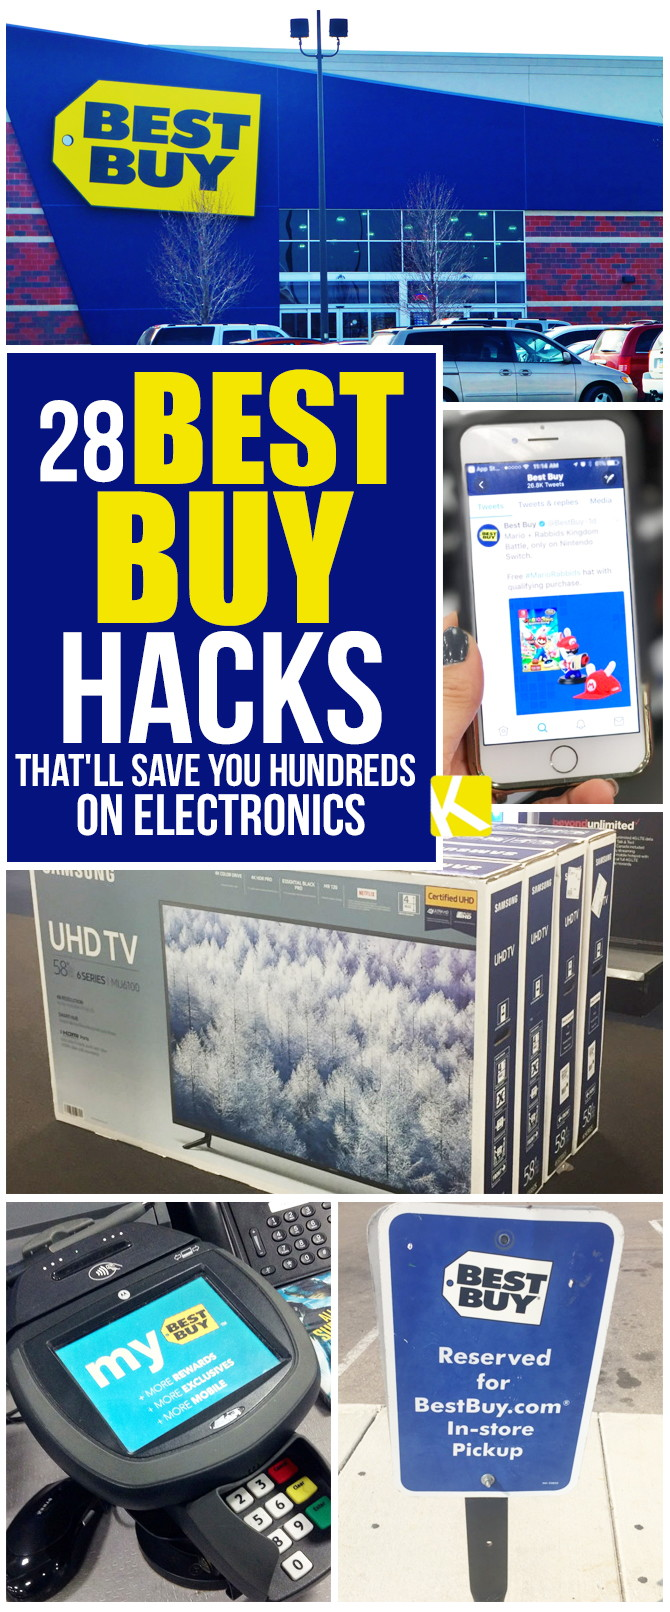 Michaels coupon money saving mom 174 - 28 Best Buy Hacks That Ll Save You Hundreds On Electronics